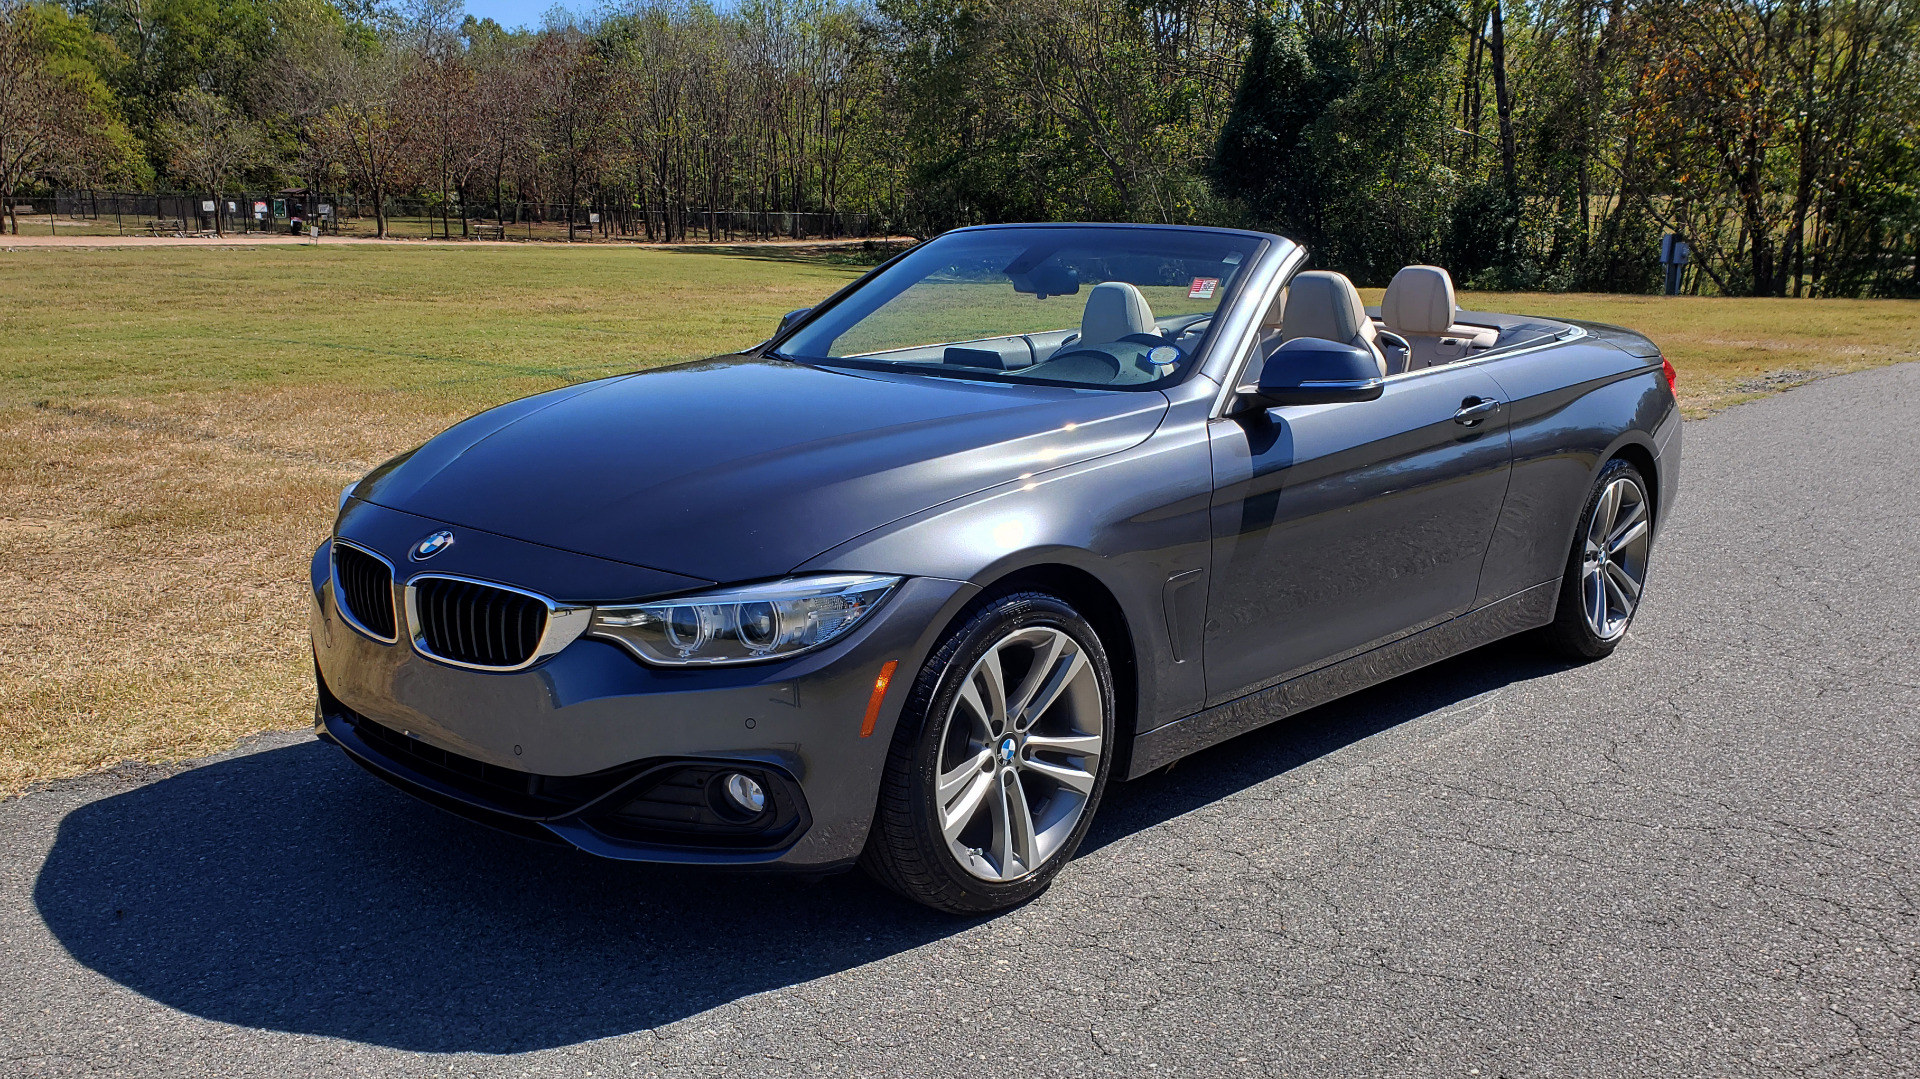 Used 2016 BMW 4 Series 428i / PREMIUM PKG / DRVR ASST / BACK-UP CAMERA for sale Sold at Formula Imports in Charlotte NC 28227 1